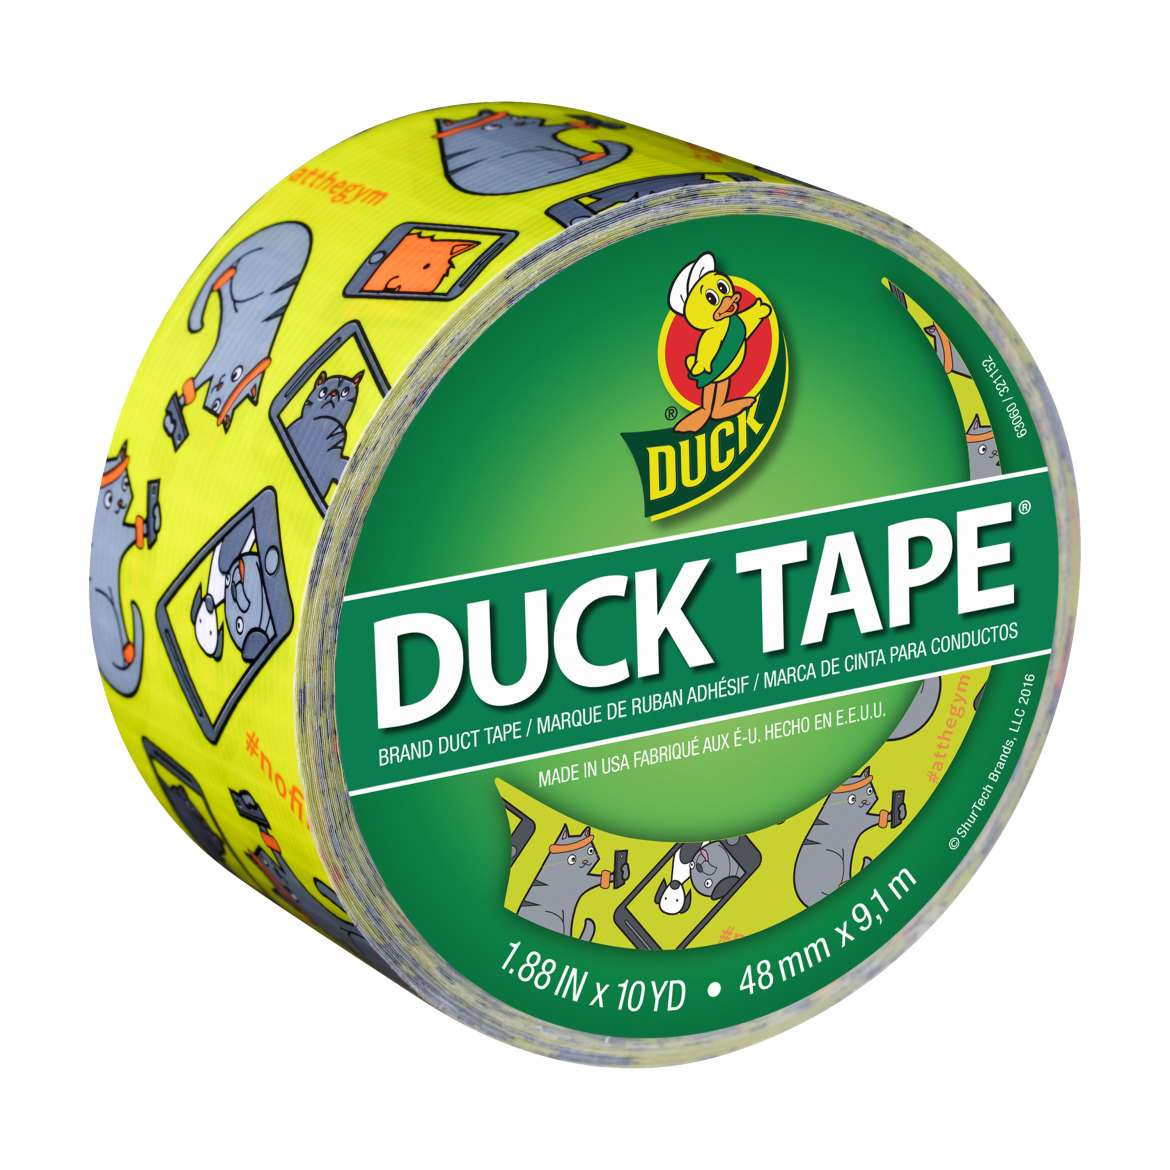 Printed Duck Tape® Brand Duct Tape - Selfie Cat, 1.88 in. x 10 yd. Image